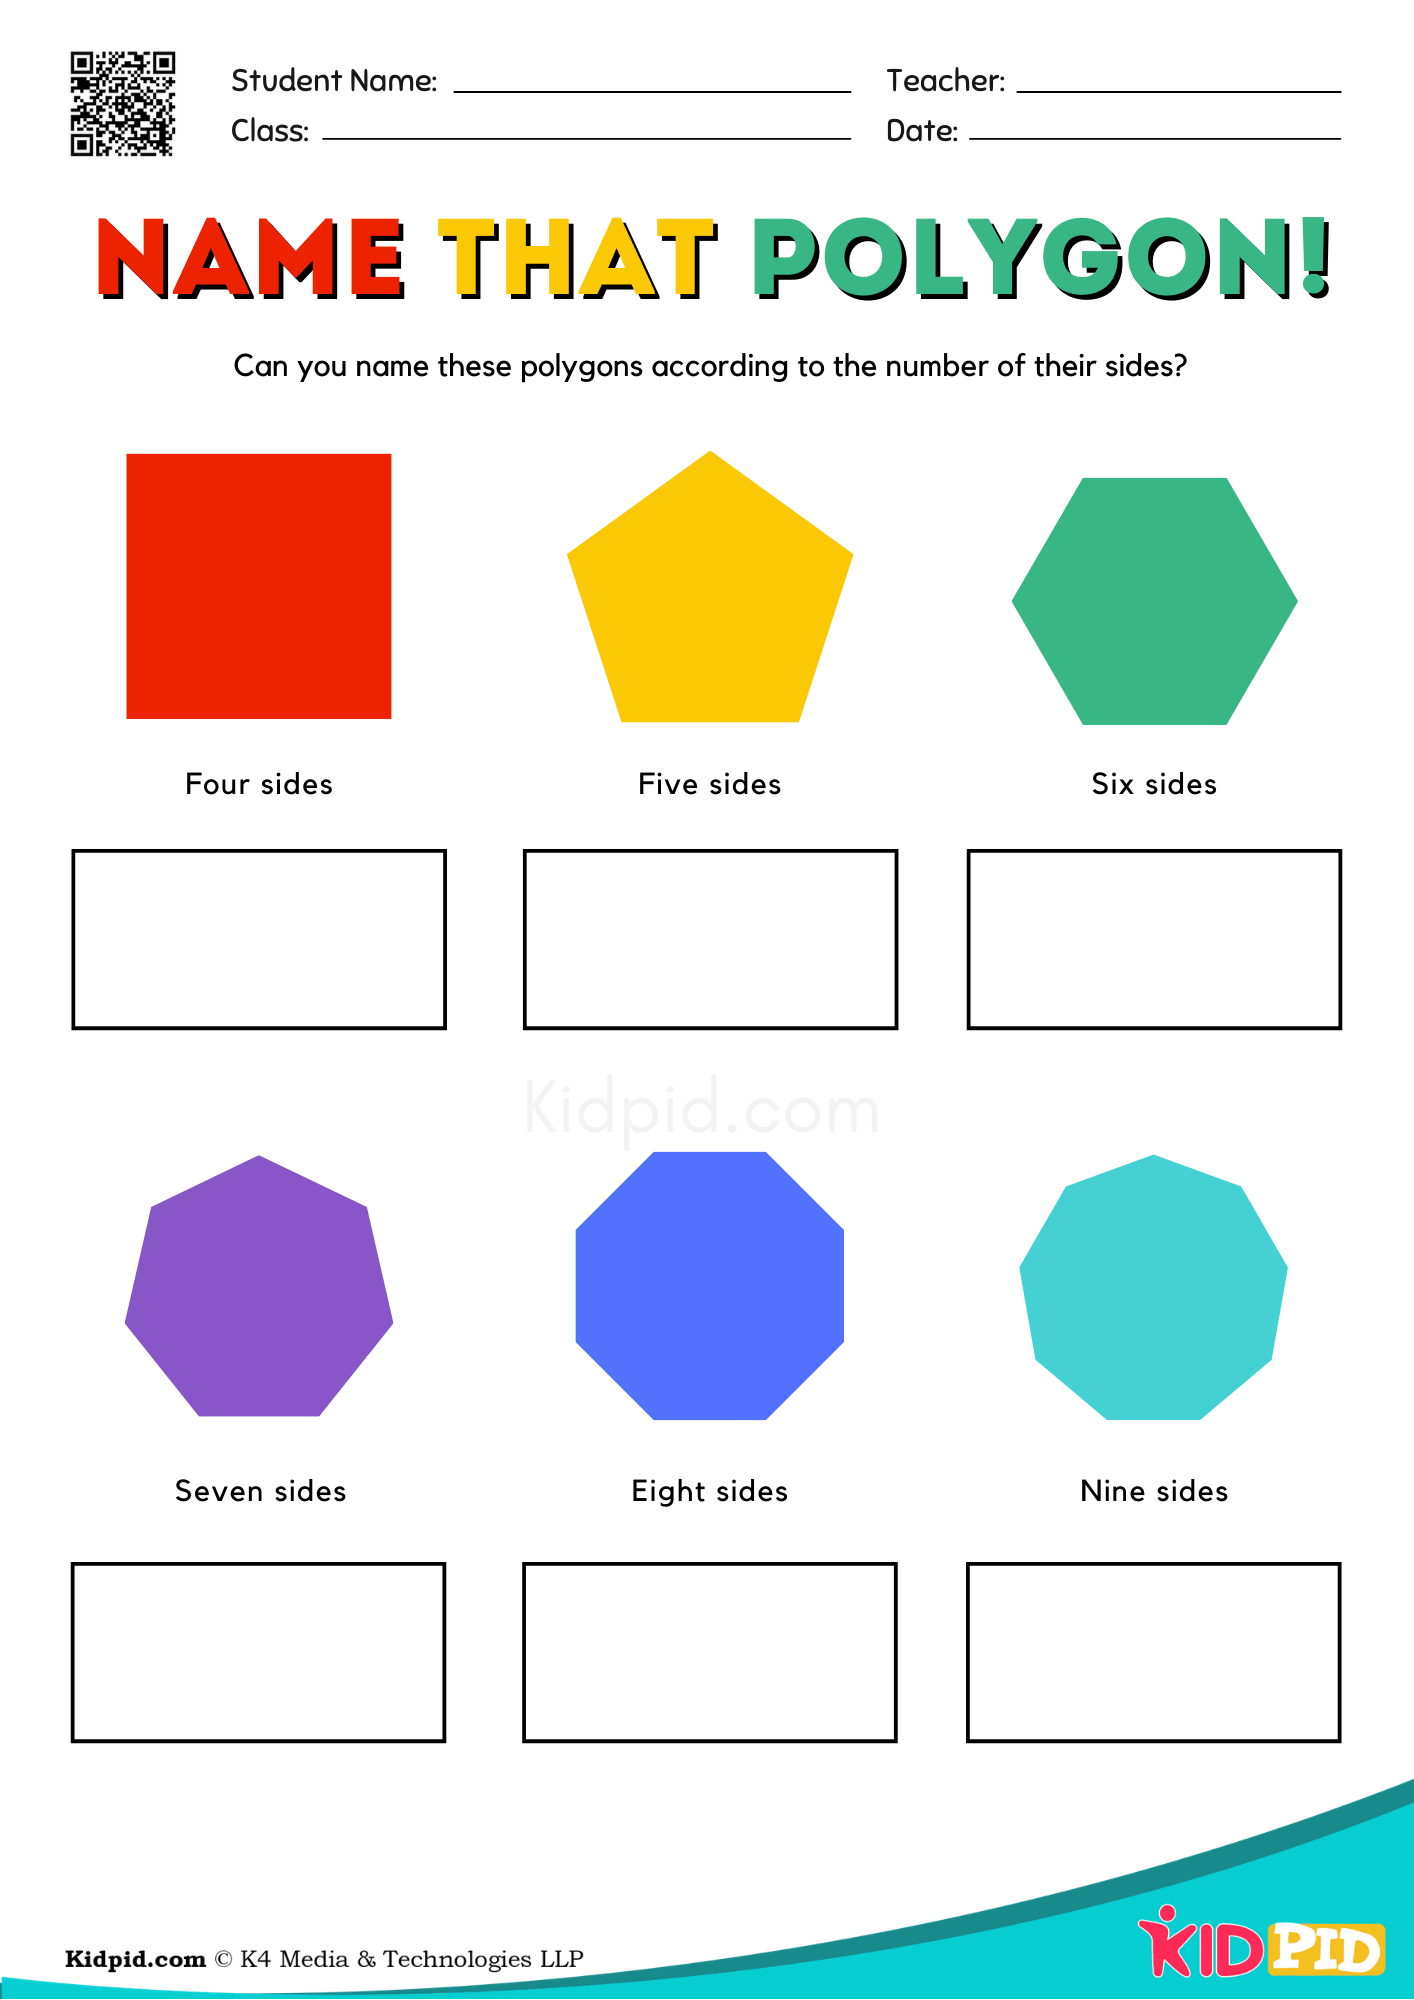 Name That Polygon Free Printable Worksheet